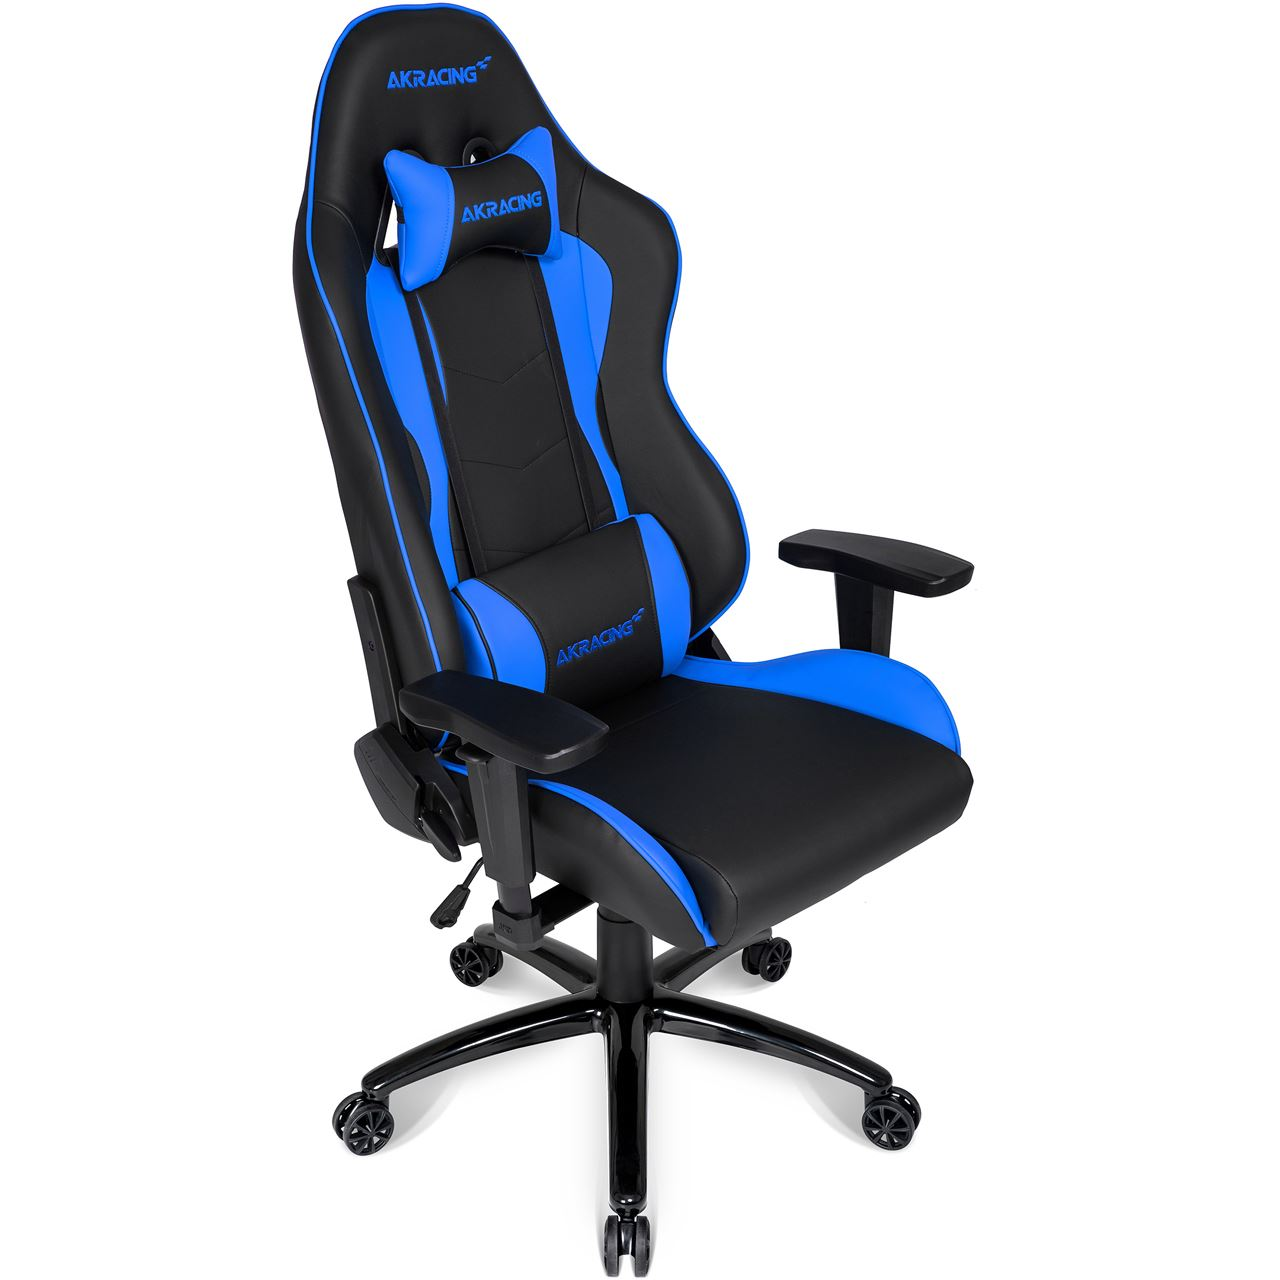 Akracing Nitro Gaming Chair Schwarz Blau